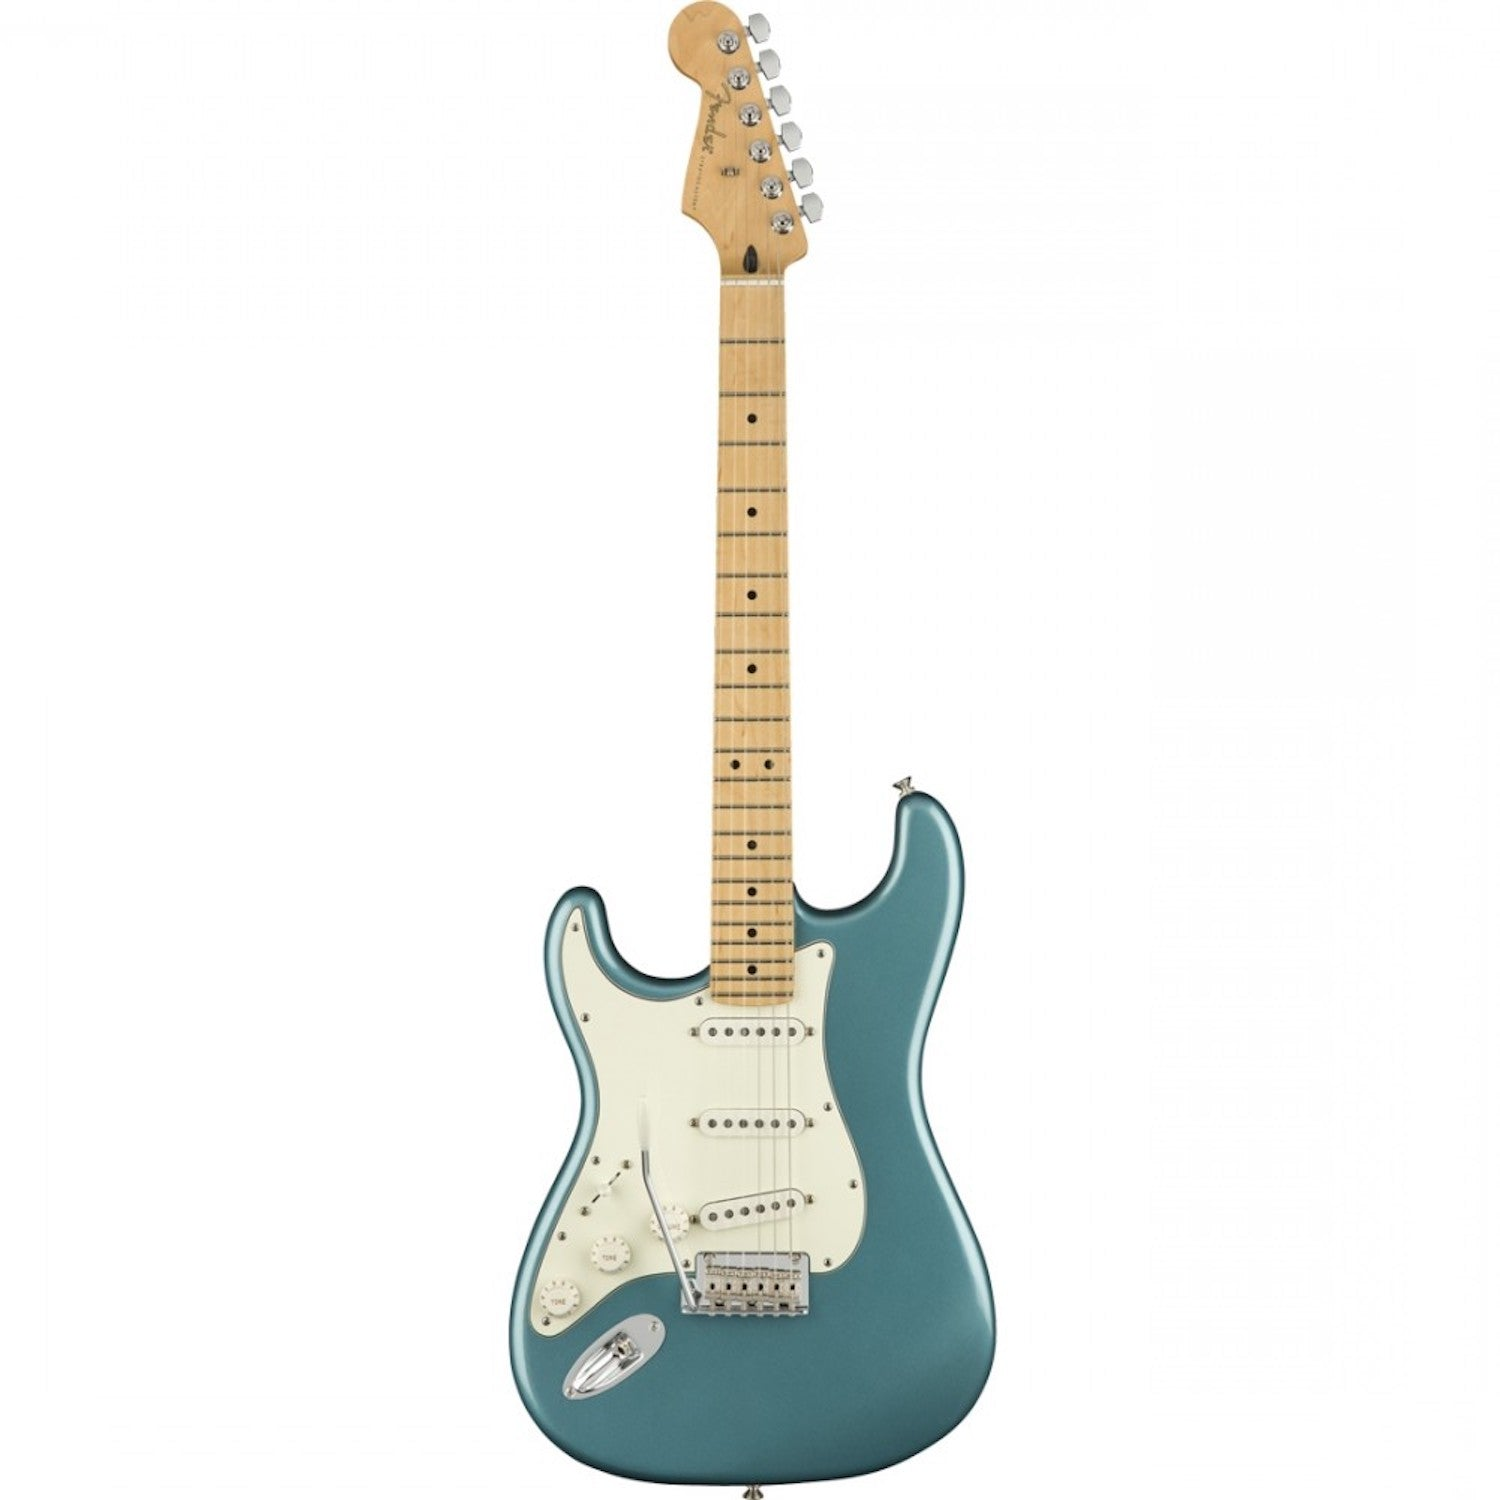 Fender Player Stratocaster® Left-Handed, Maple Fingerboard, Tidepool